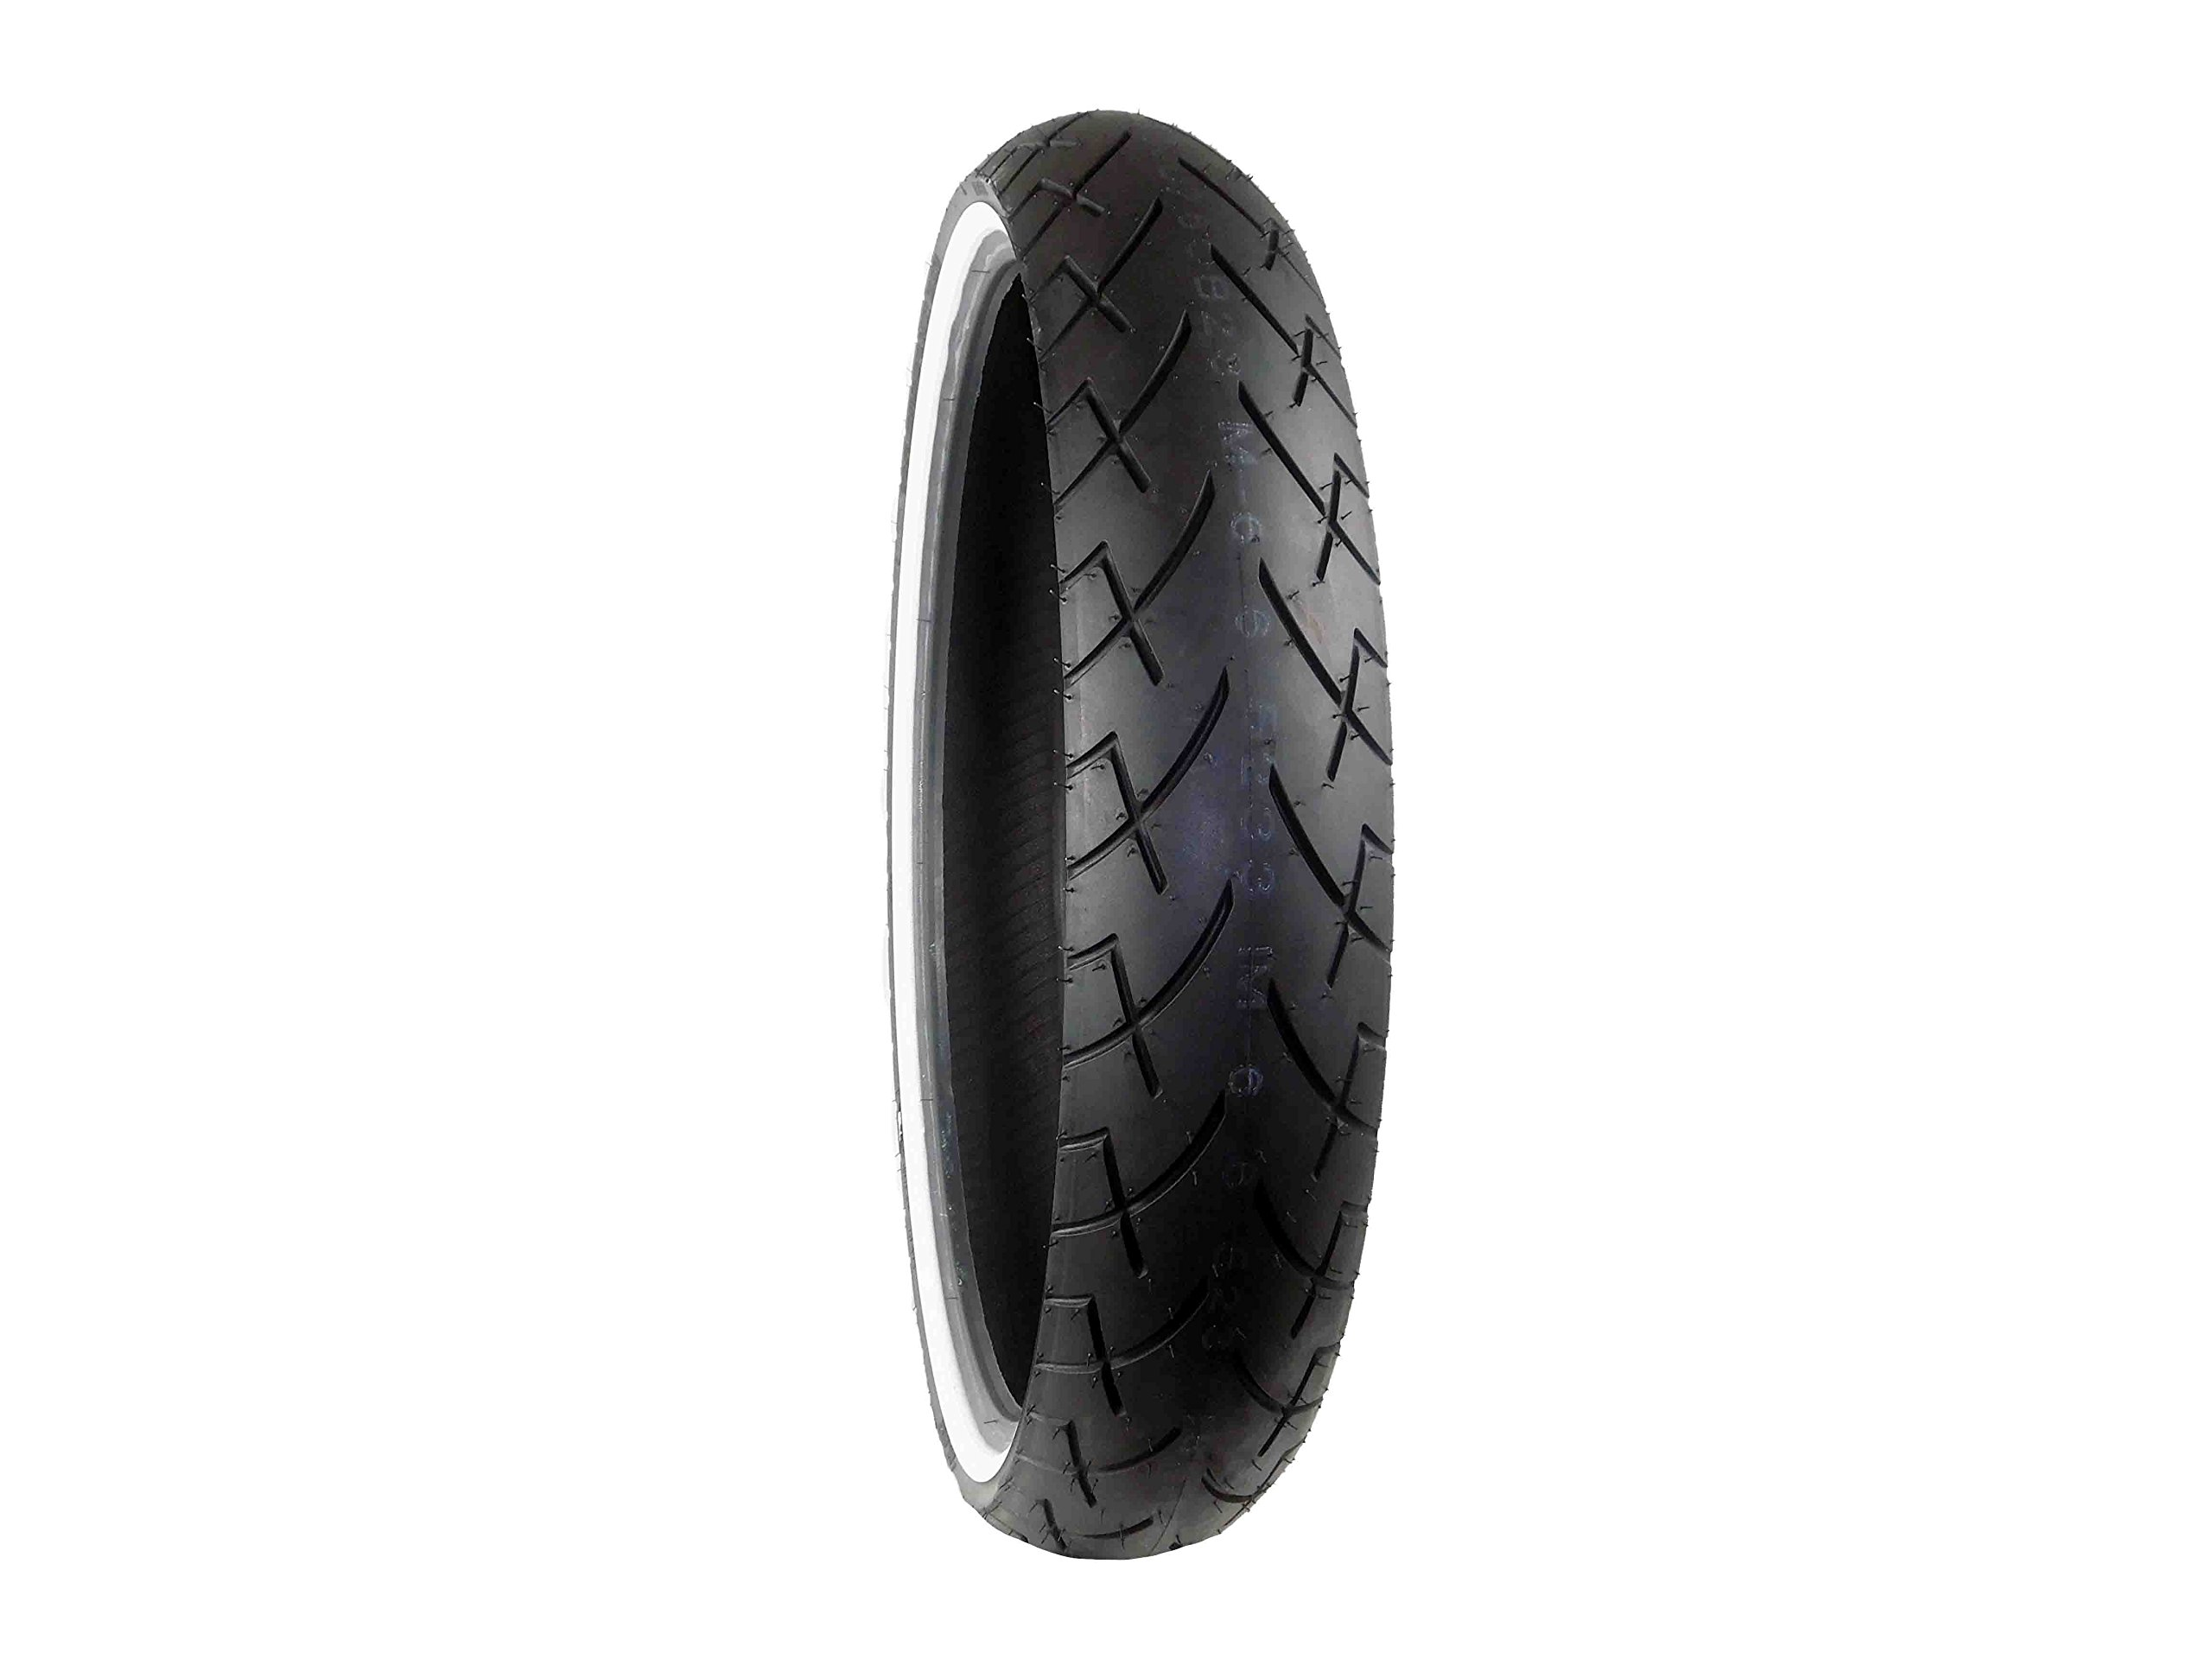 Full Bore 130/60B23 WW F 65V White Wall M66 Cruiser Motorcycle Tire 130/60-23